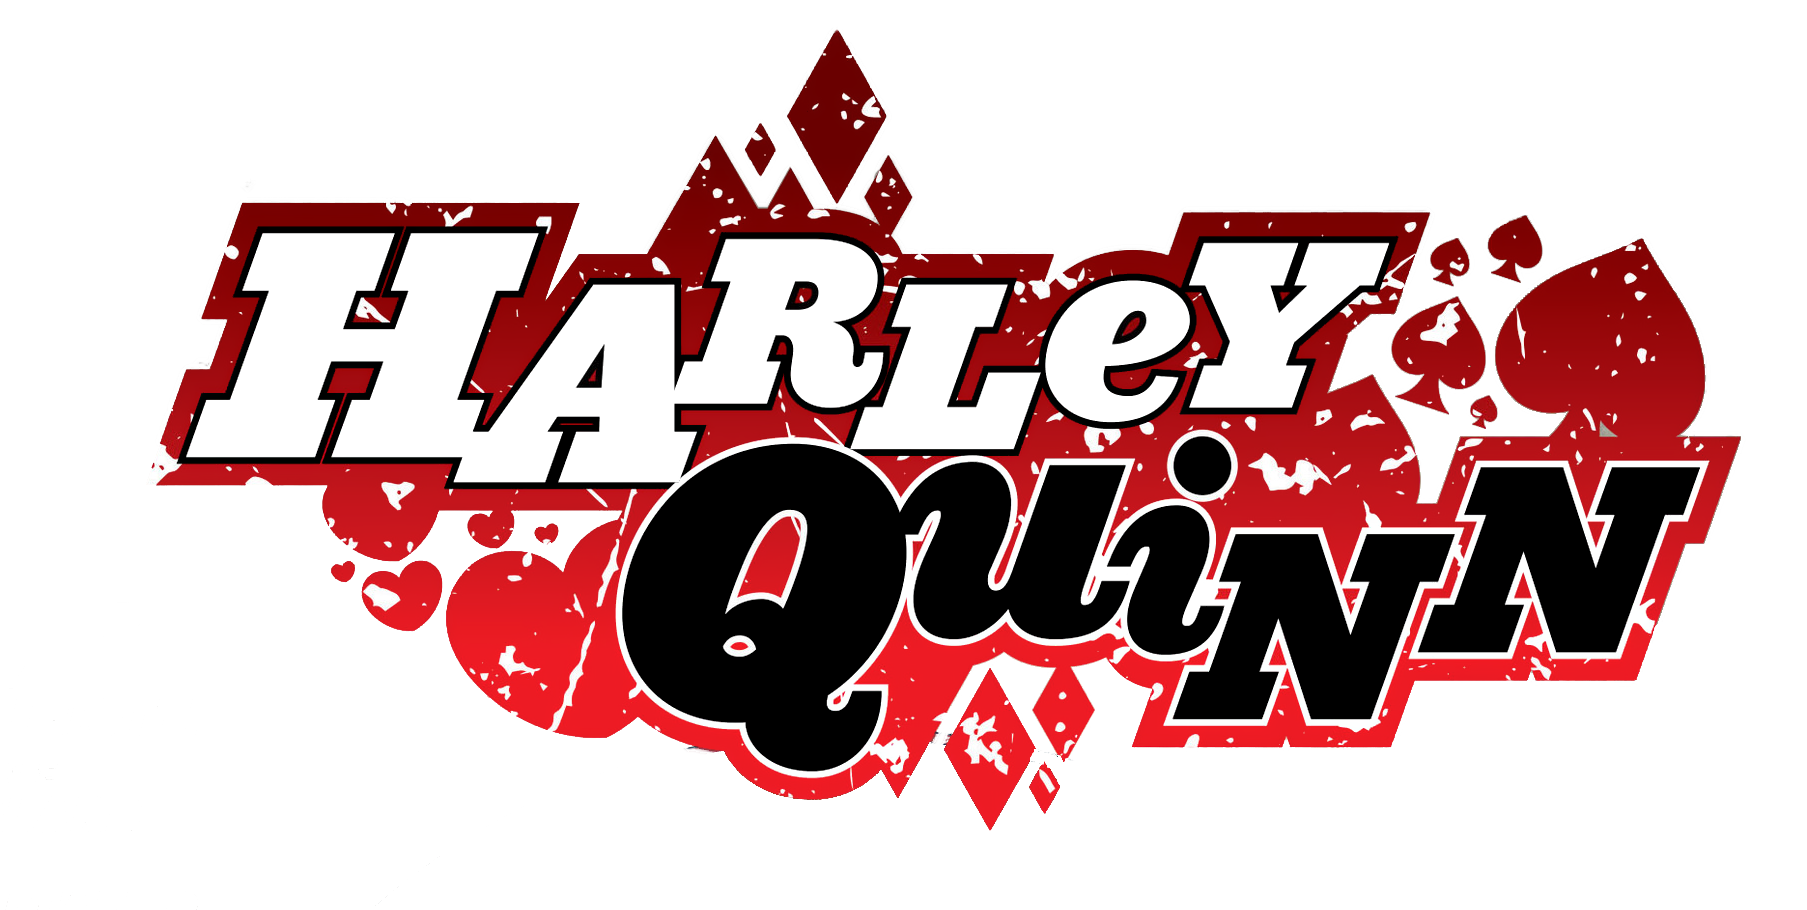 Harley quinn clipart hd clipart free download Harley Quinn PNG Transparent Images   Free Download Clip Art ... clipart free download